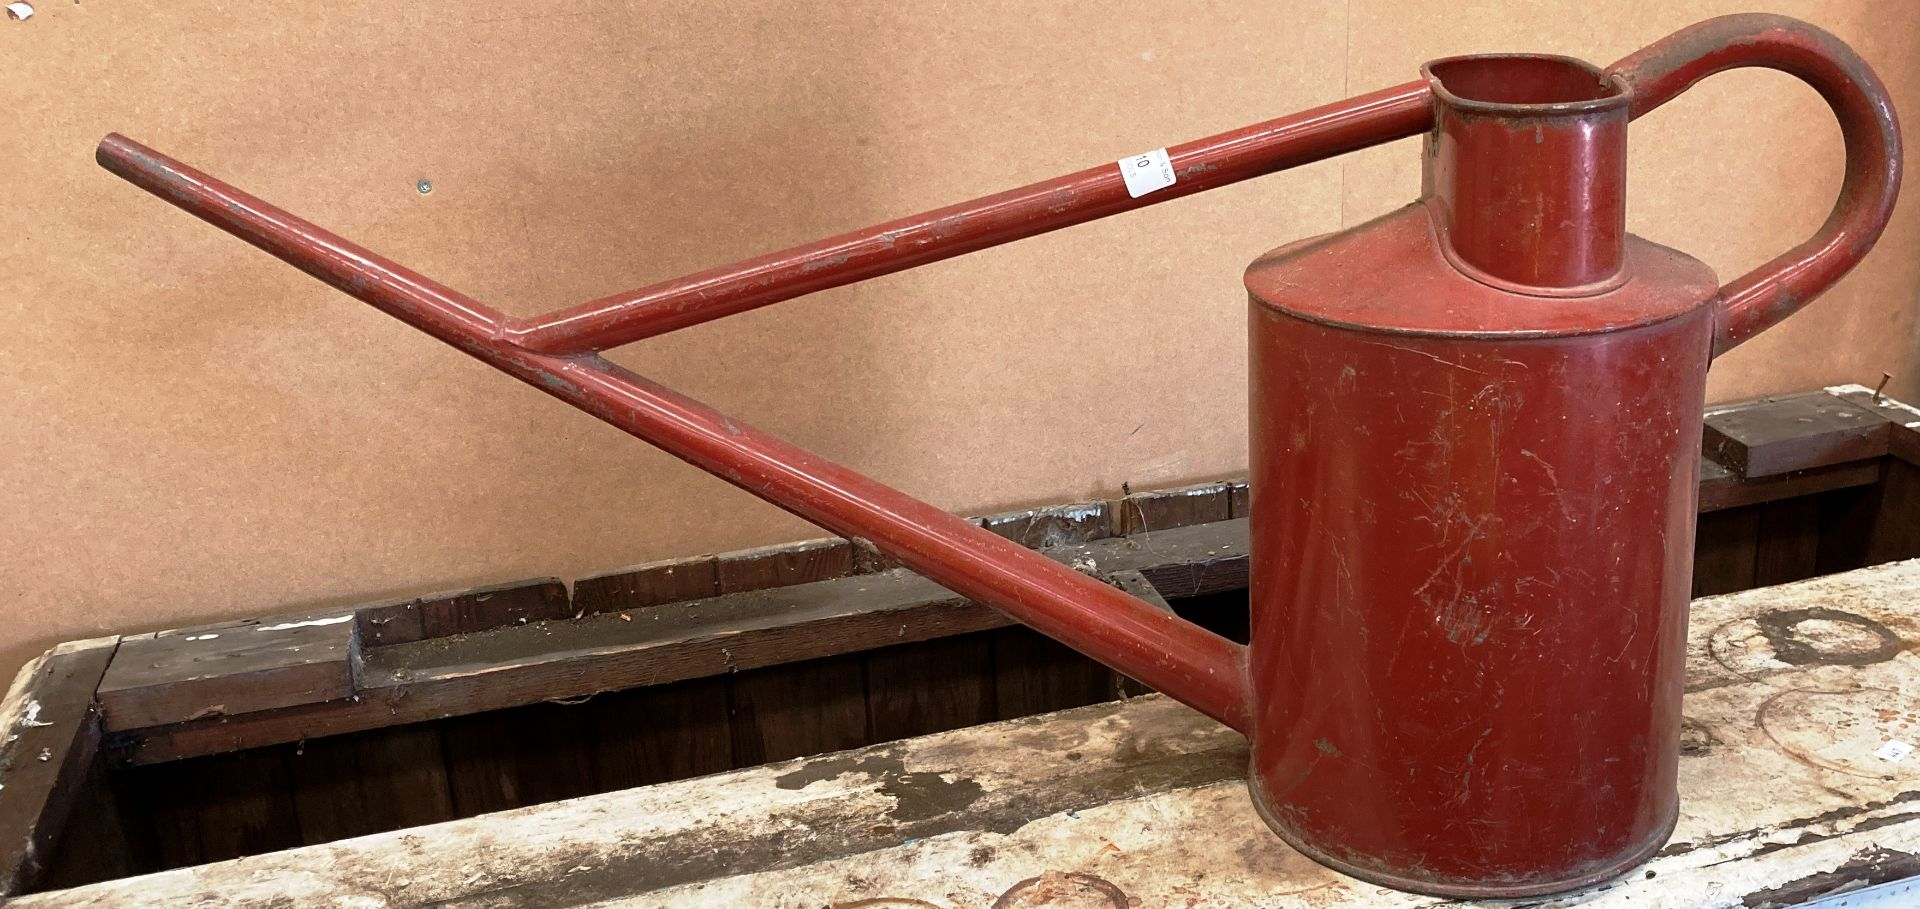 A large red metal watering can